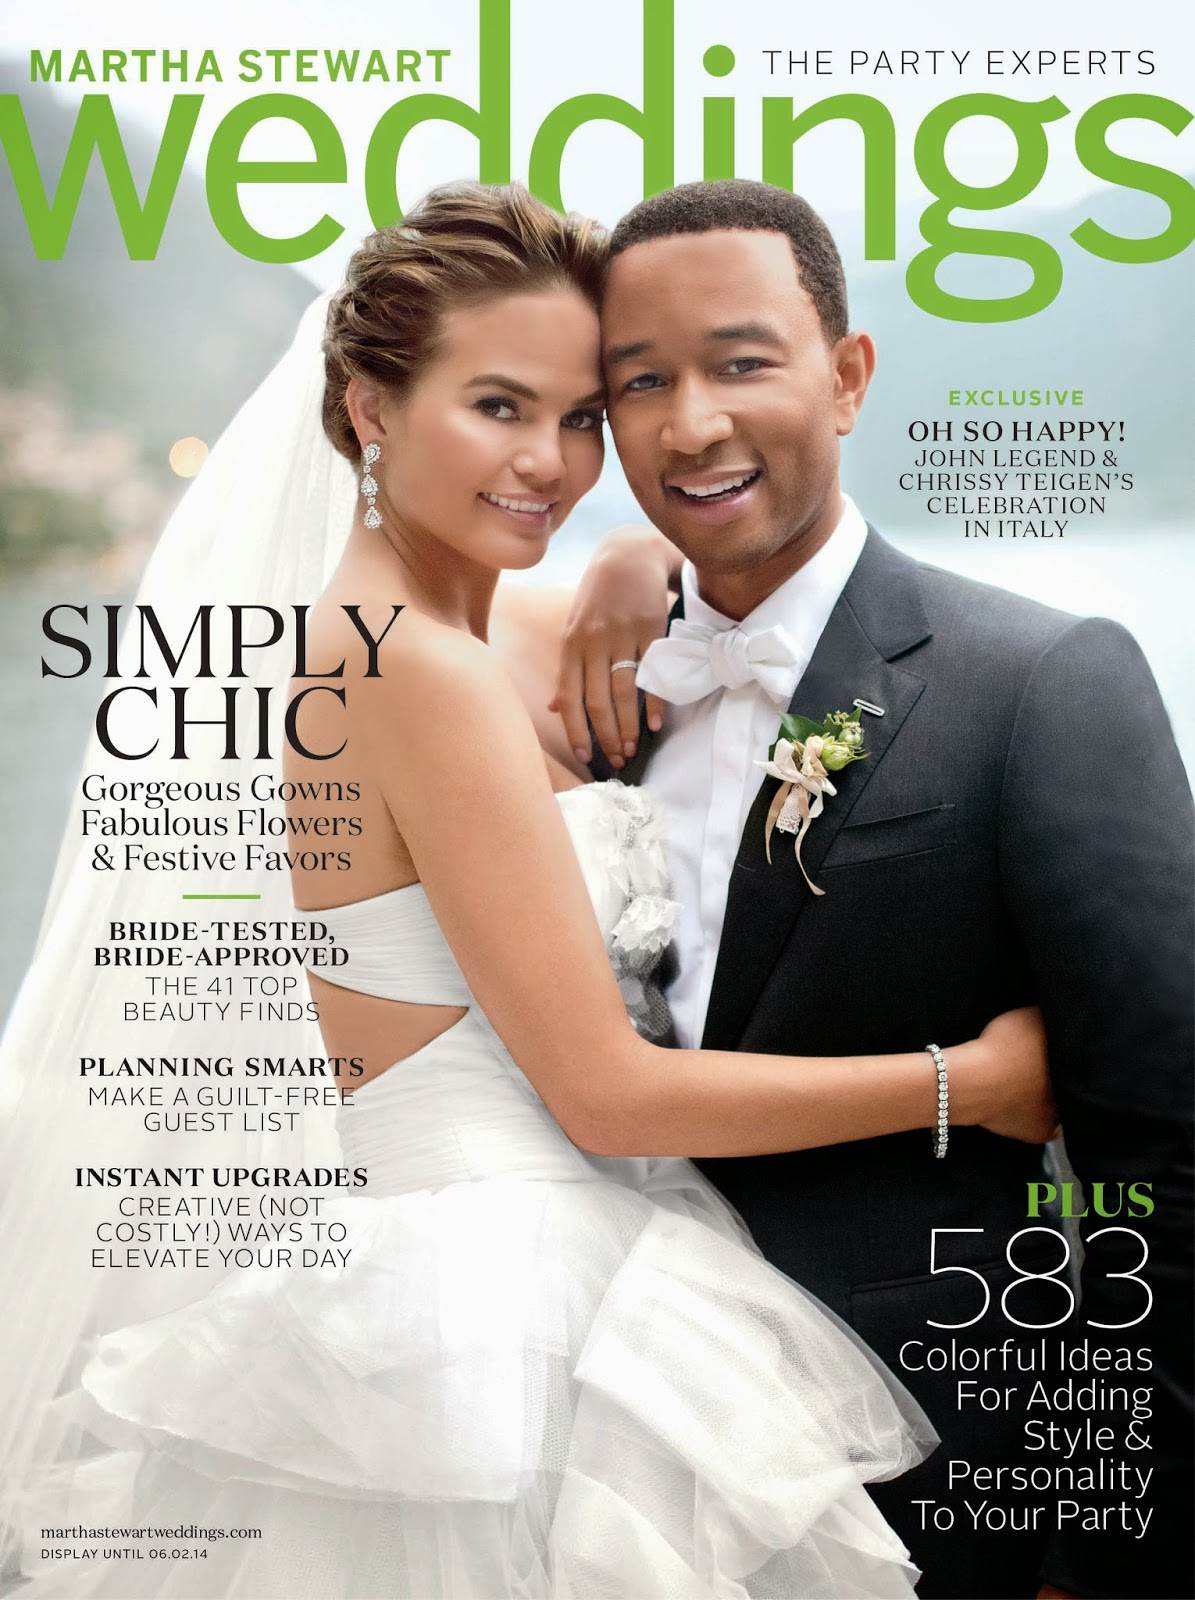 Martha Stewart Weddings Spring 2014 John Legend & Chissy Teigen